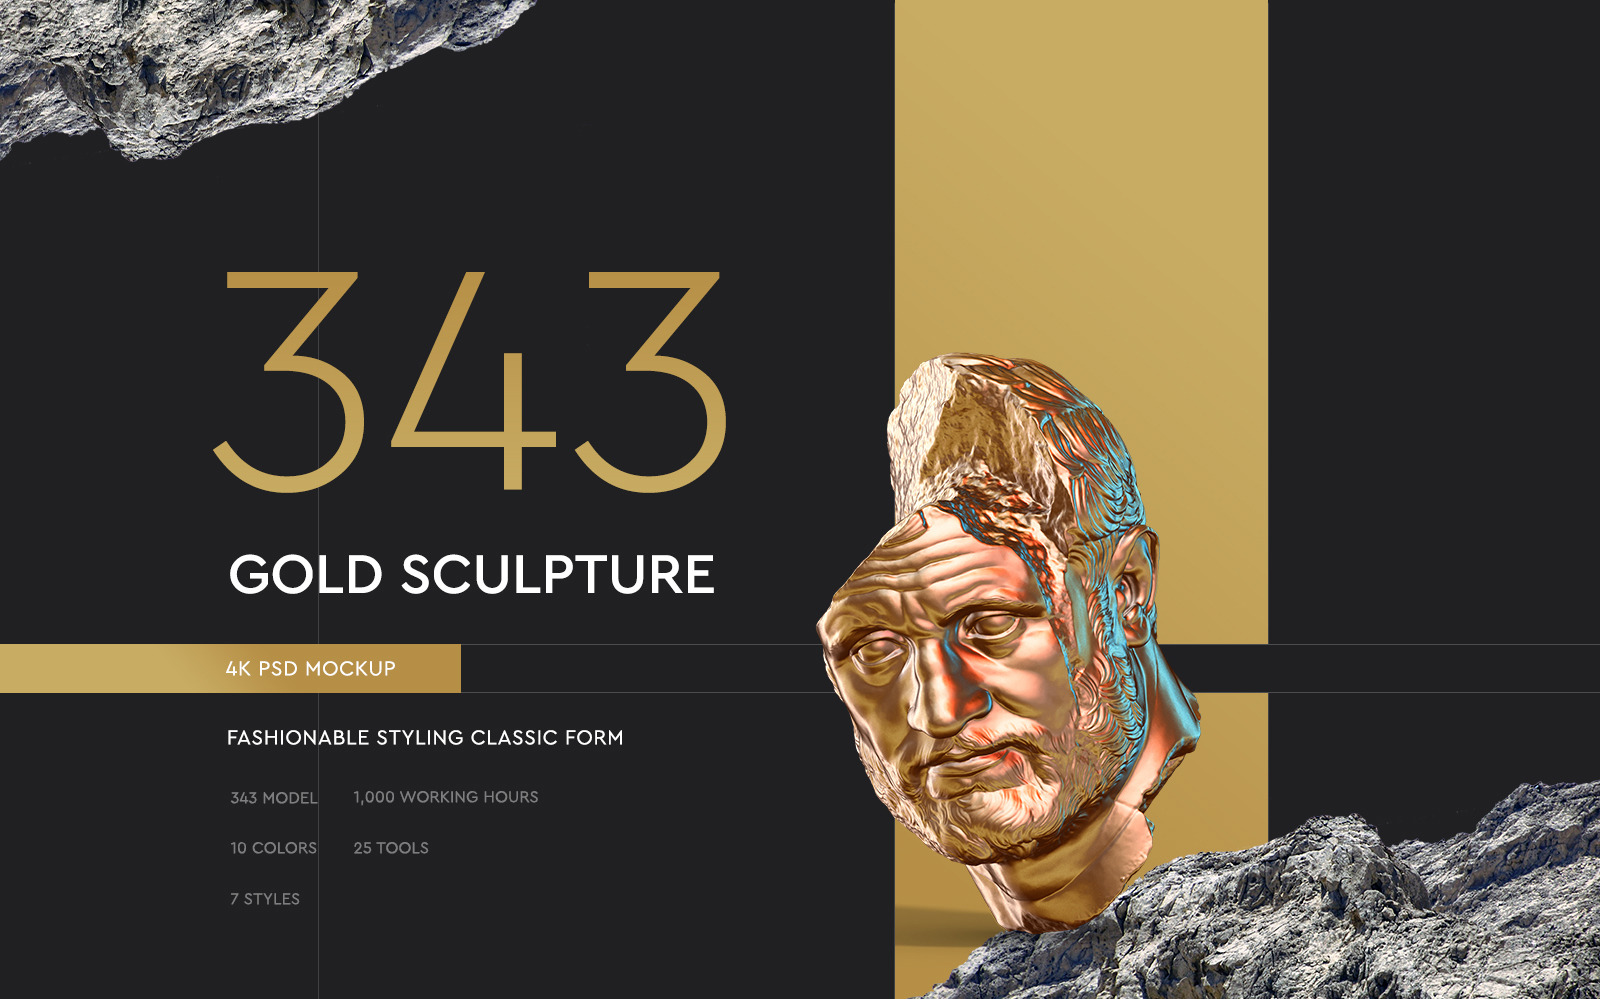 Collection of 343 Sculptures in Gold style # 13 for branding and design of your product